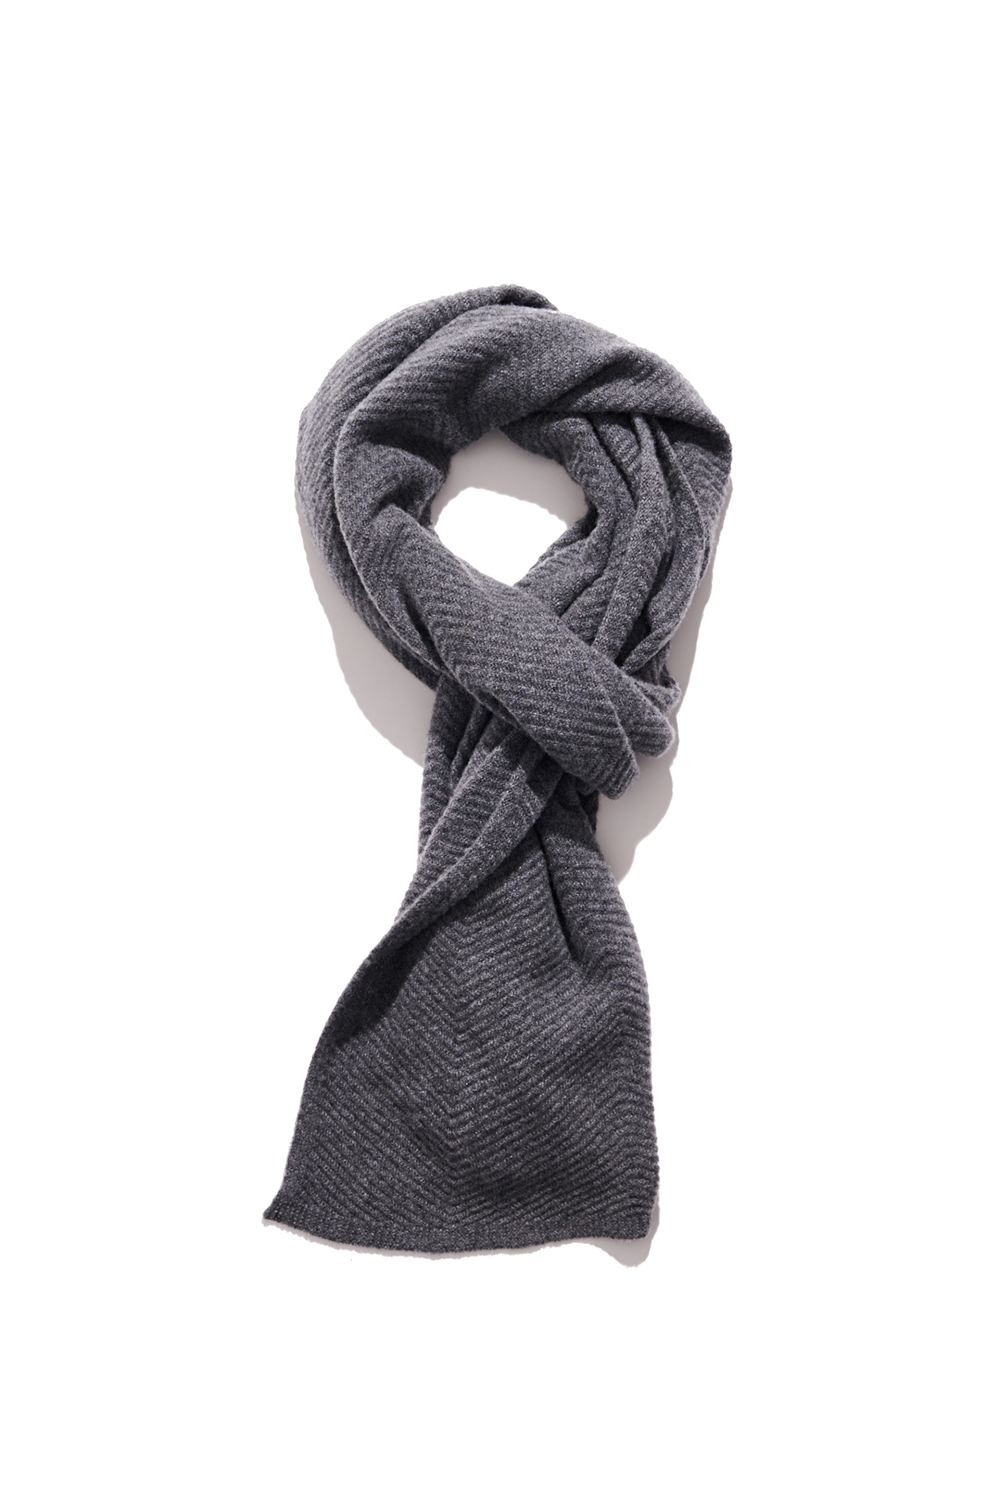 Premium pure cashmere100 whole-garment knitting shawl and scarf - Dark gray